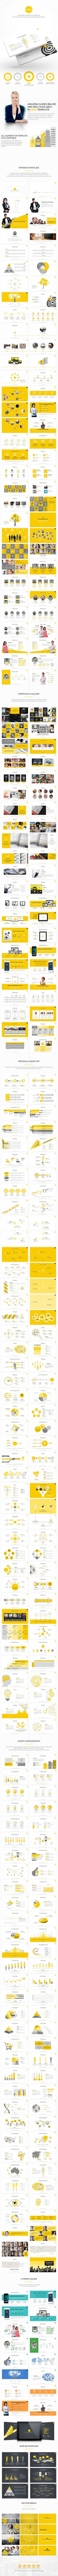 Vero 1.5 - Connecting Your business PowerPoint Template / Theme / Presentation / Slides / Background / Power Point #powerpoint #template #theme